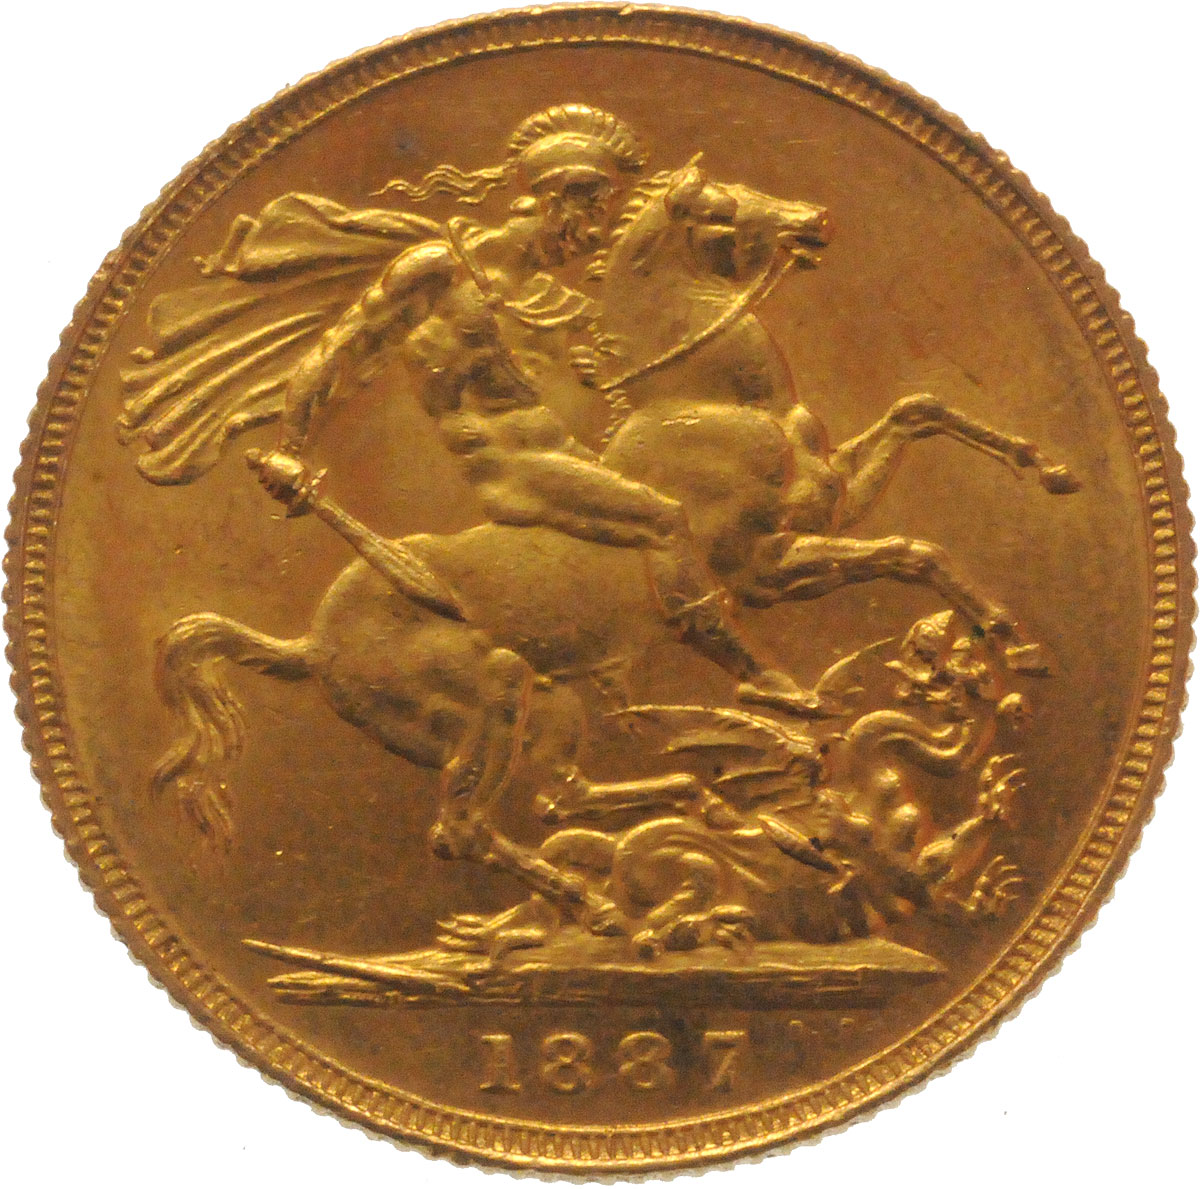 Reverse Face of a 1887-Gold-Sovereign-Victoria-Jubilee-Head-St-George-London-Mint